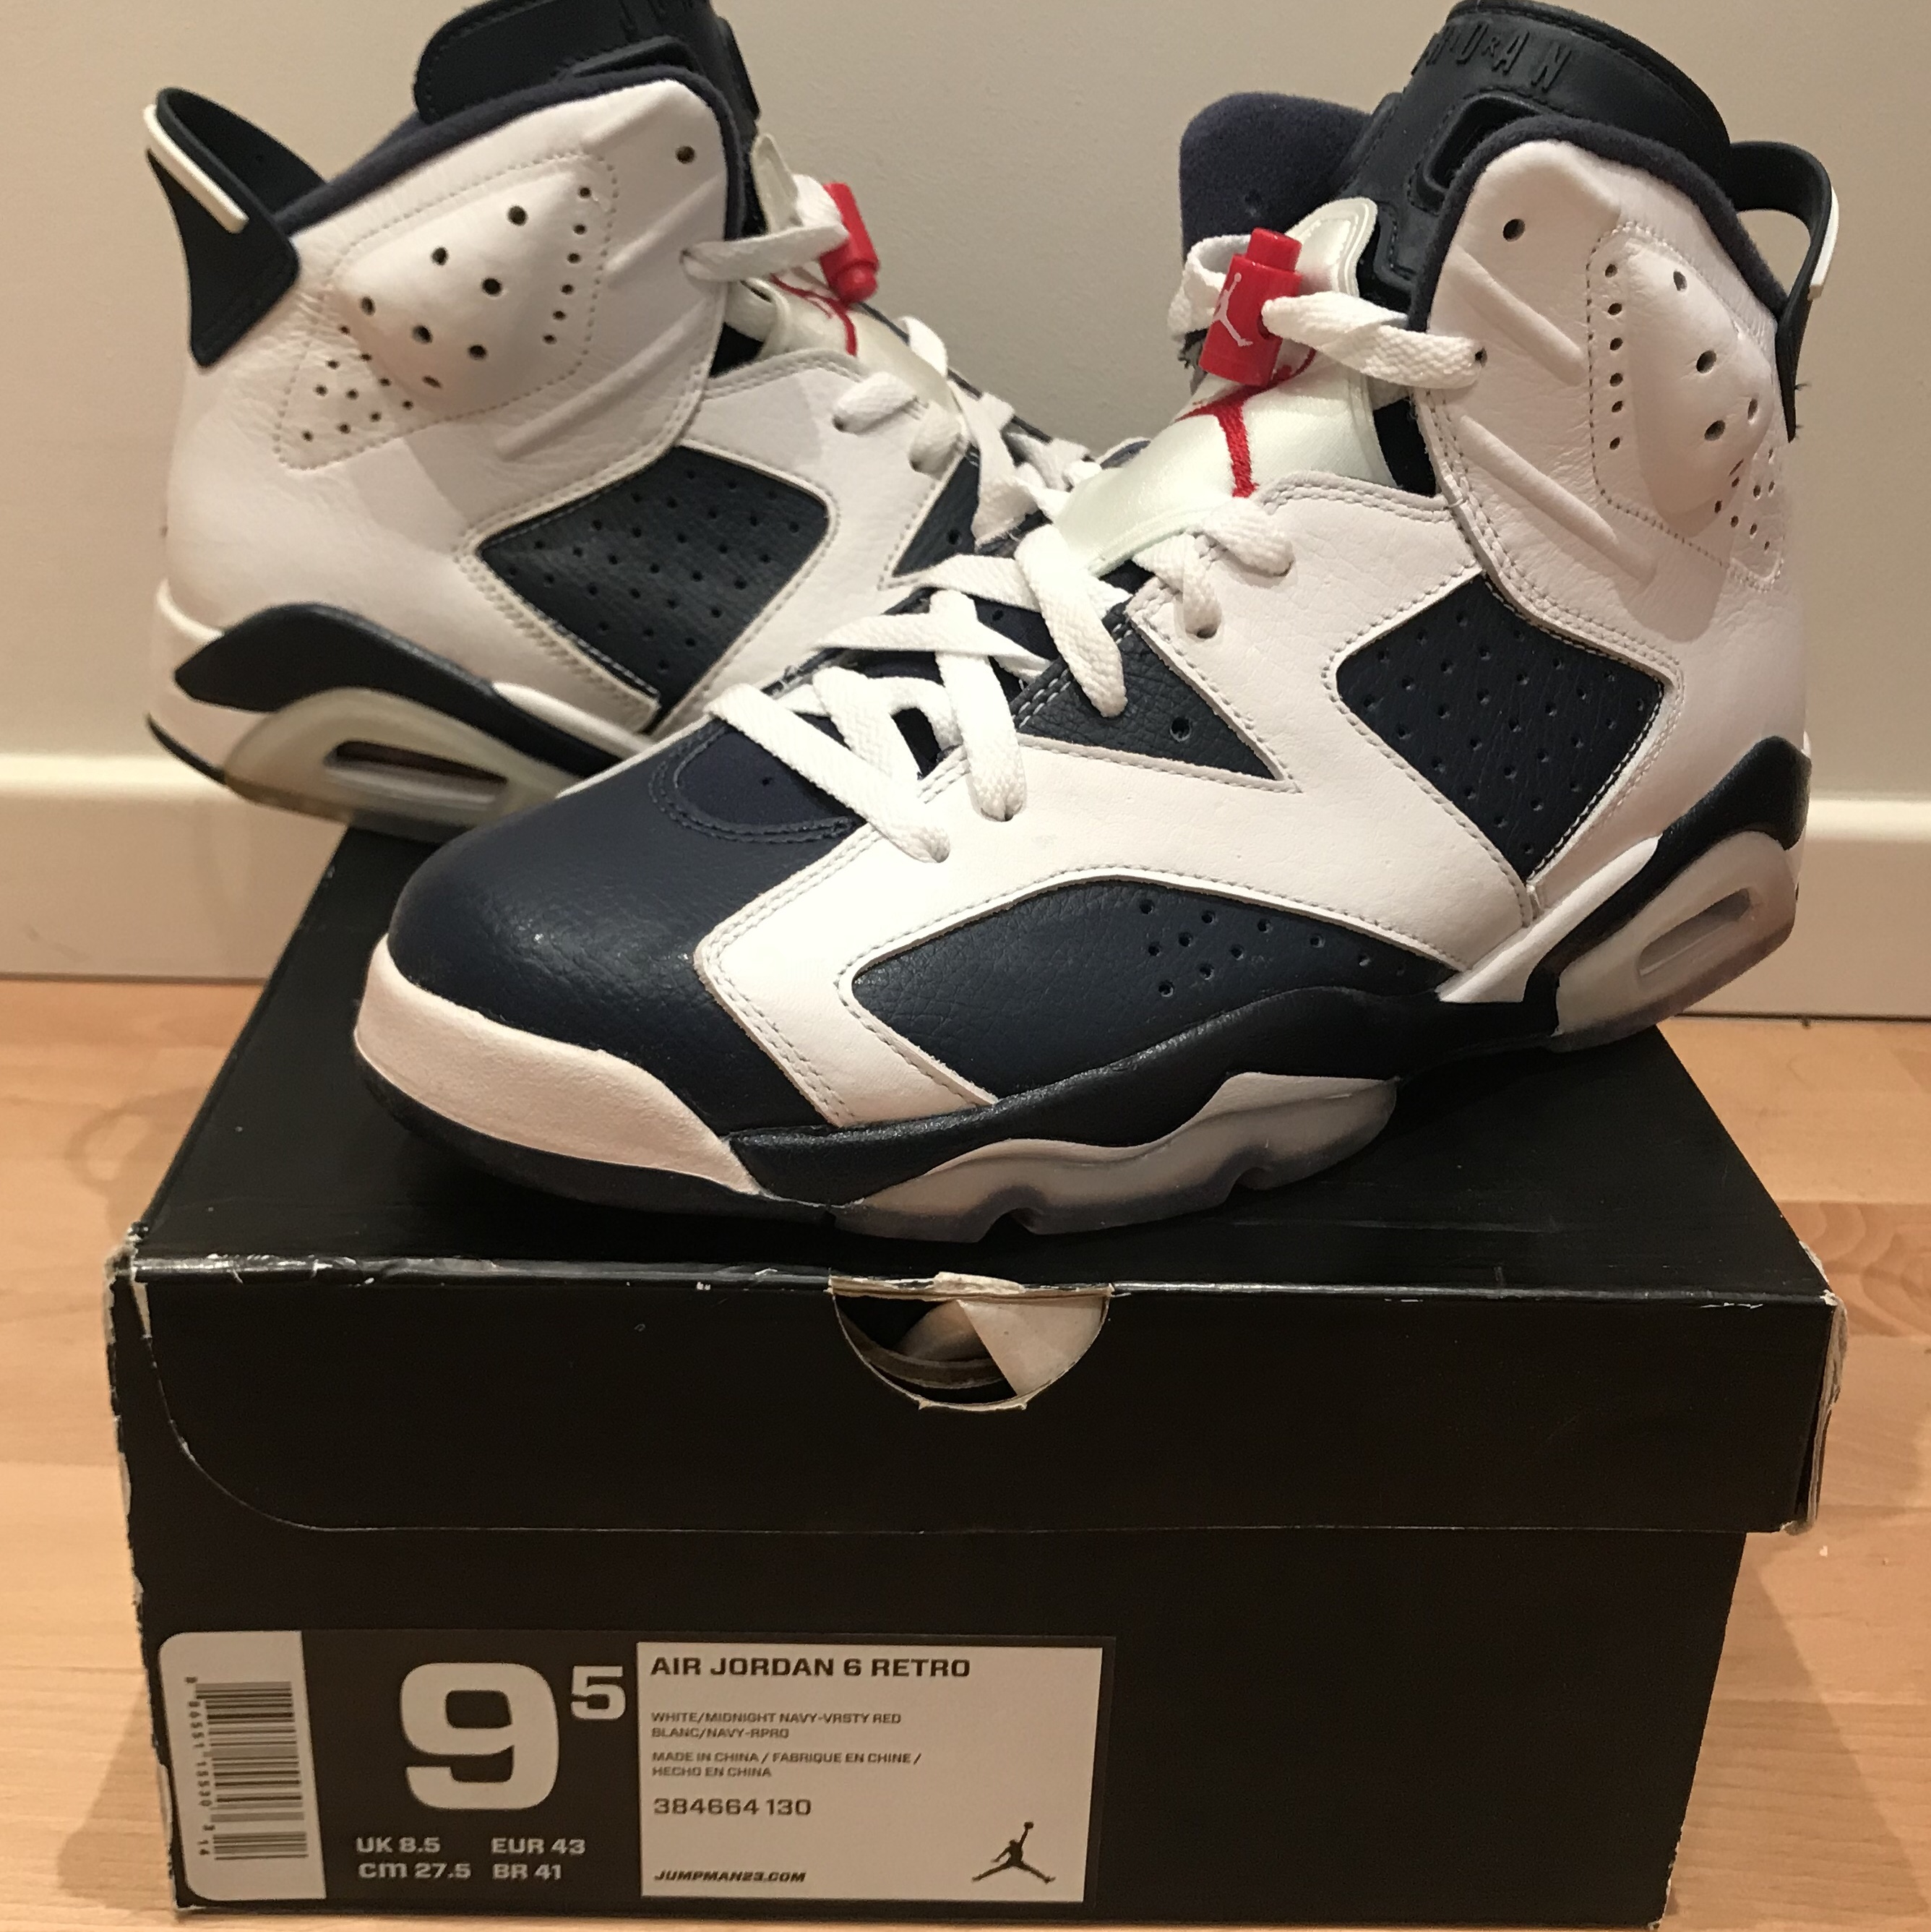 super popular 247dc ae83e Air Jordan 6 Olympic 2012 Retro US9.5 / EU43 new in... - Depop